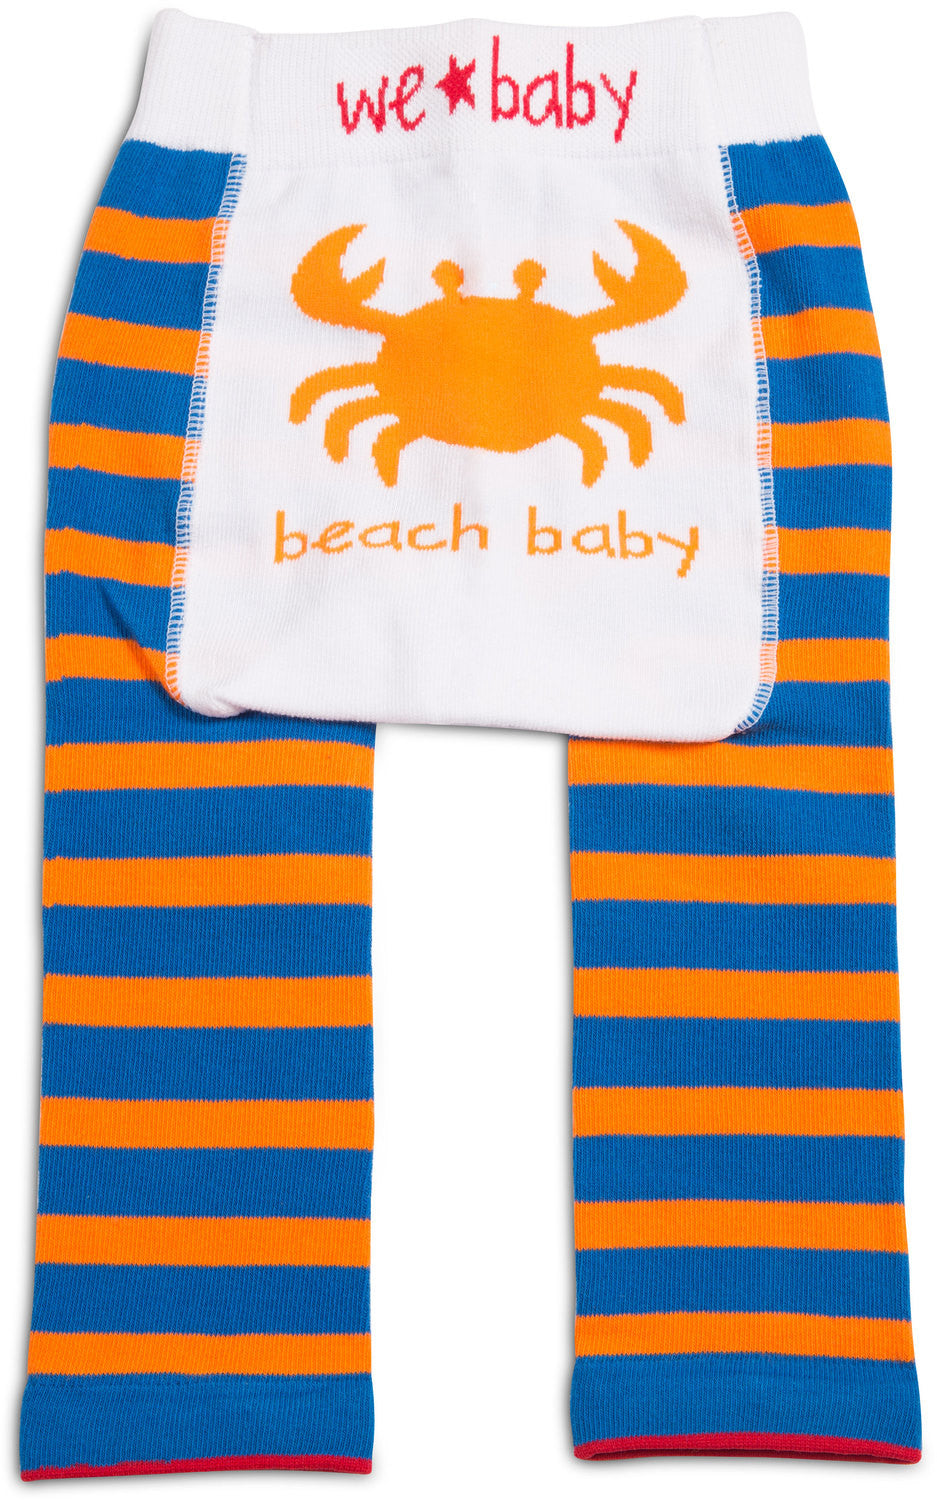 Beach Baby - Baby Boys Leggings, We Baby (Coming Soon) - GigglesGear.com